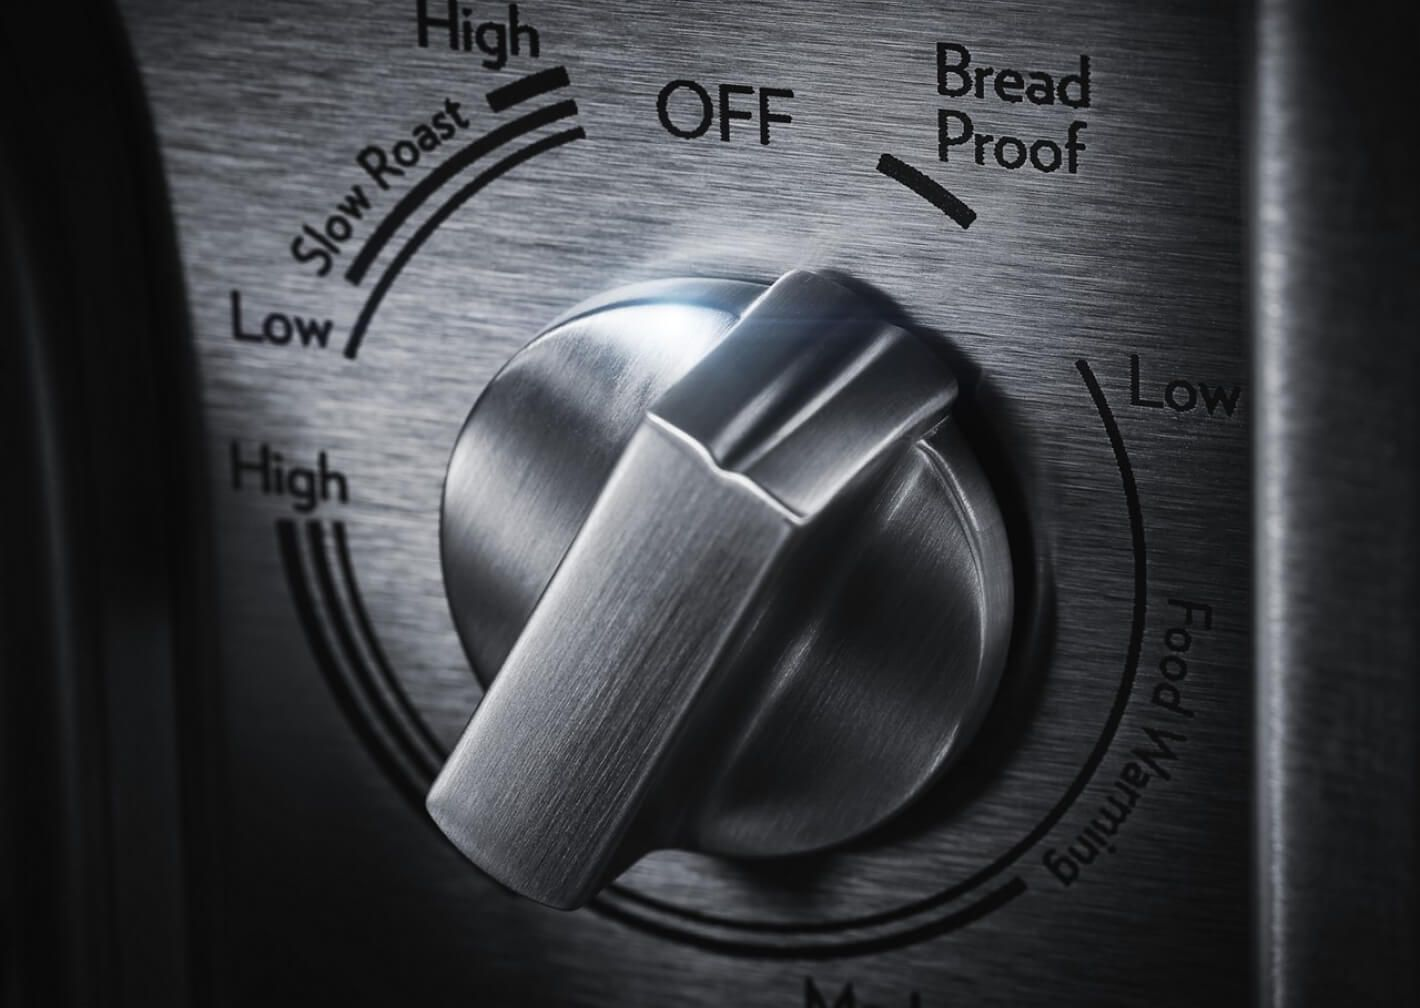 The control knob set to bread proofing.